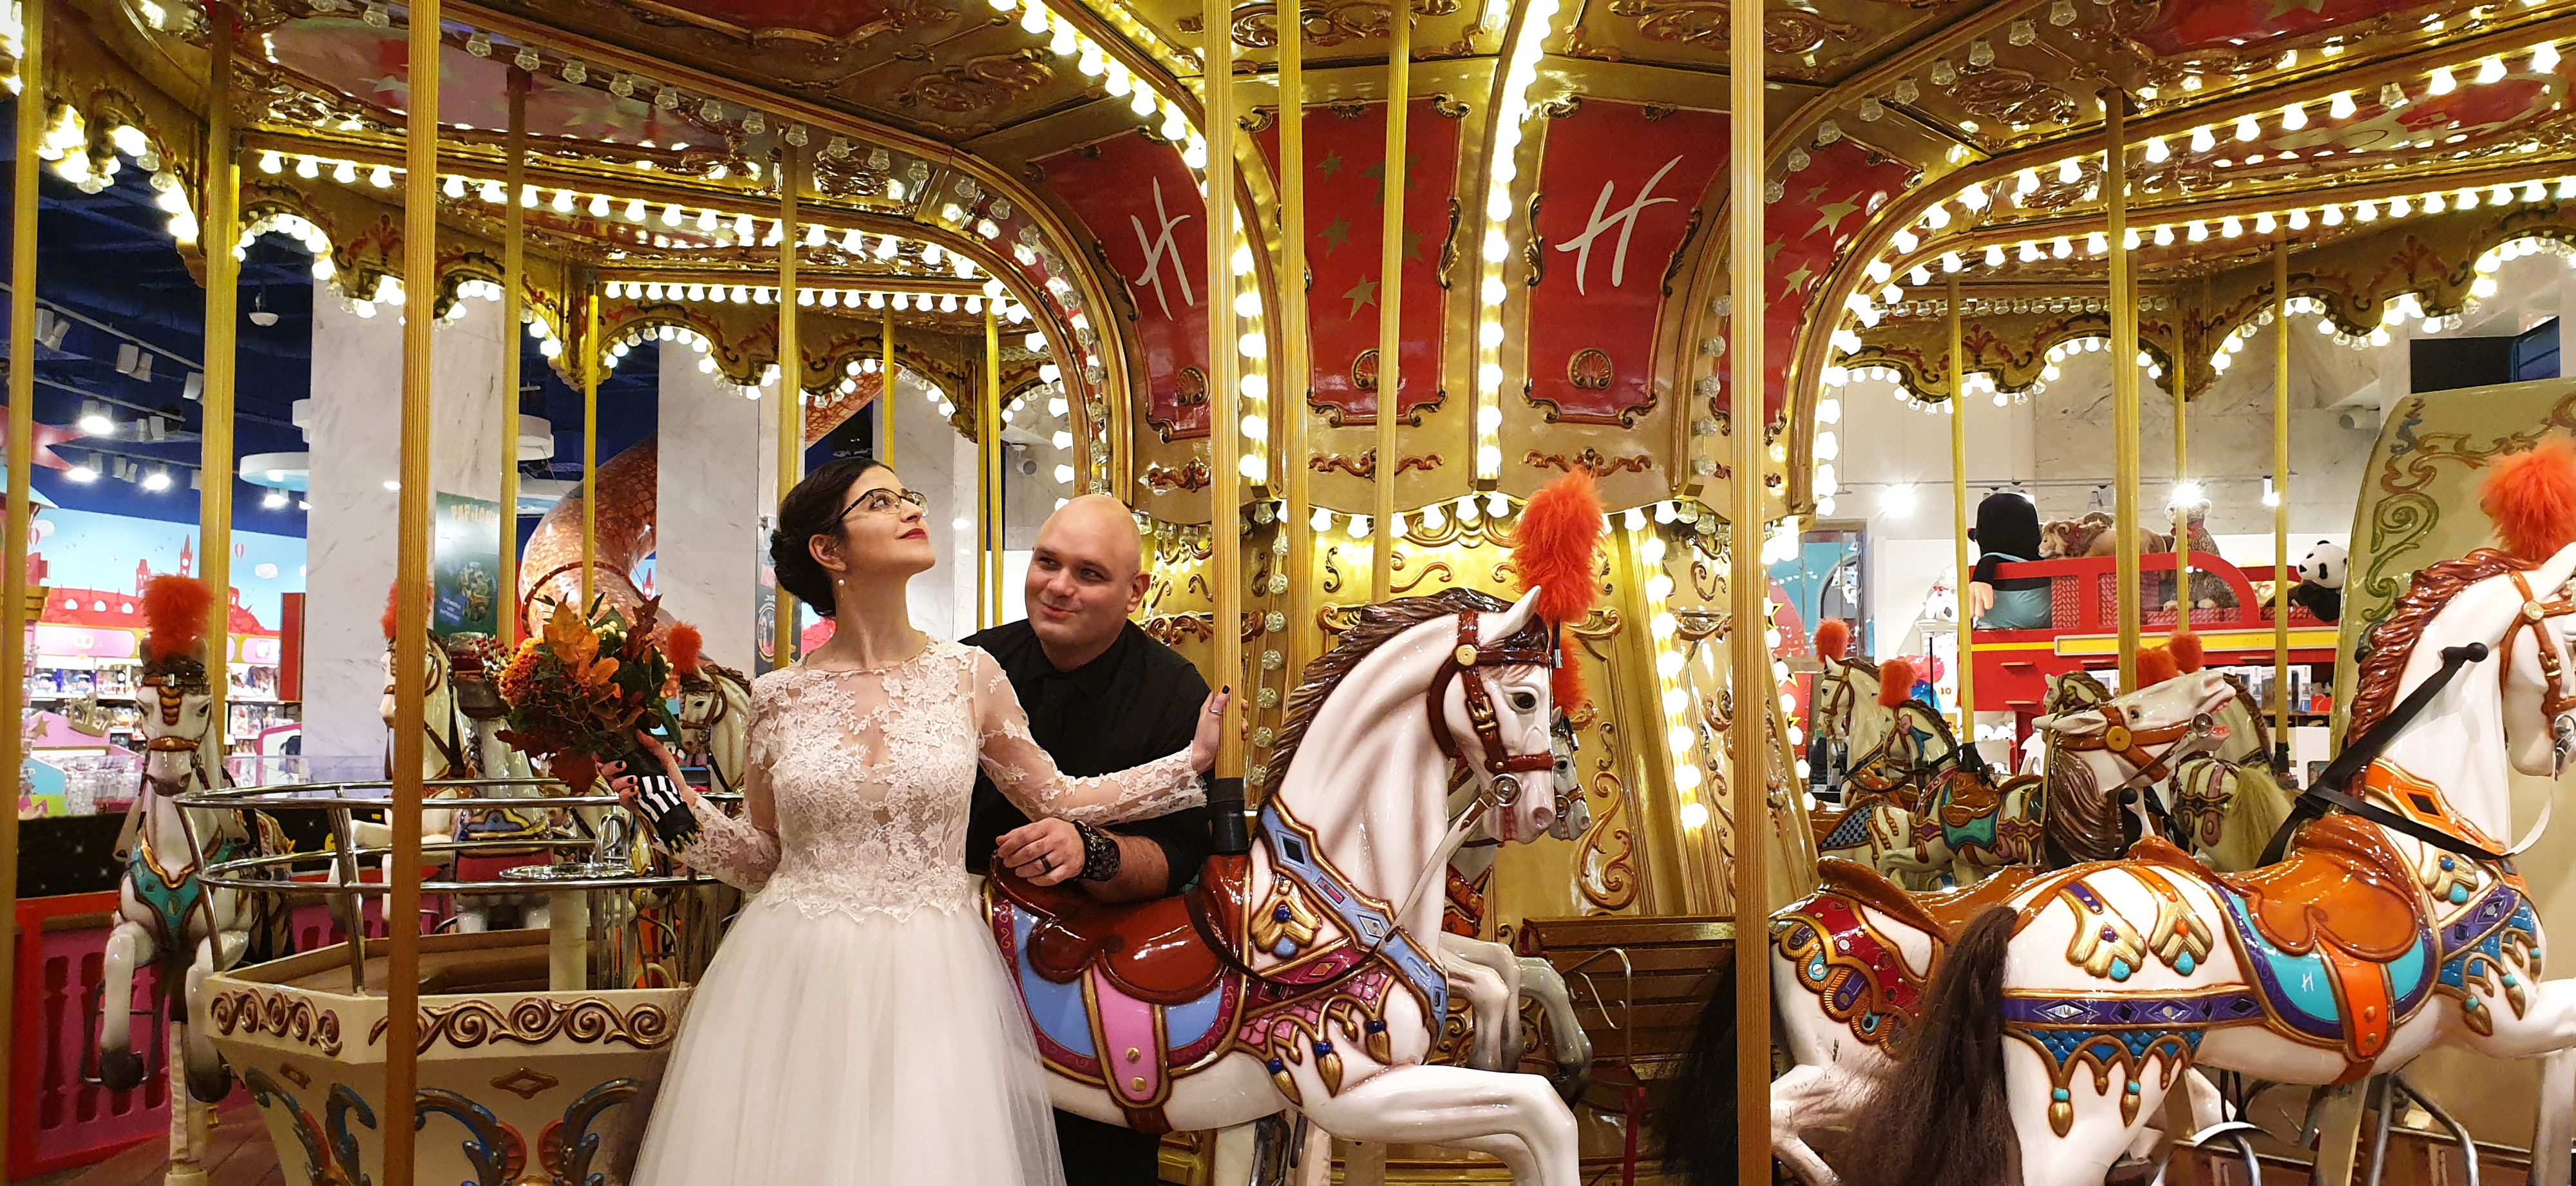 Bride and groom on a carousel